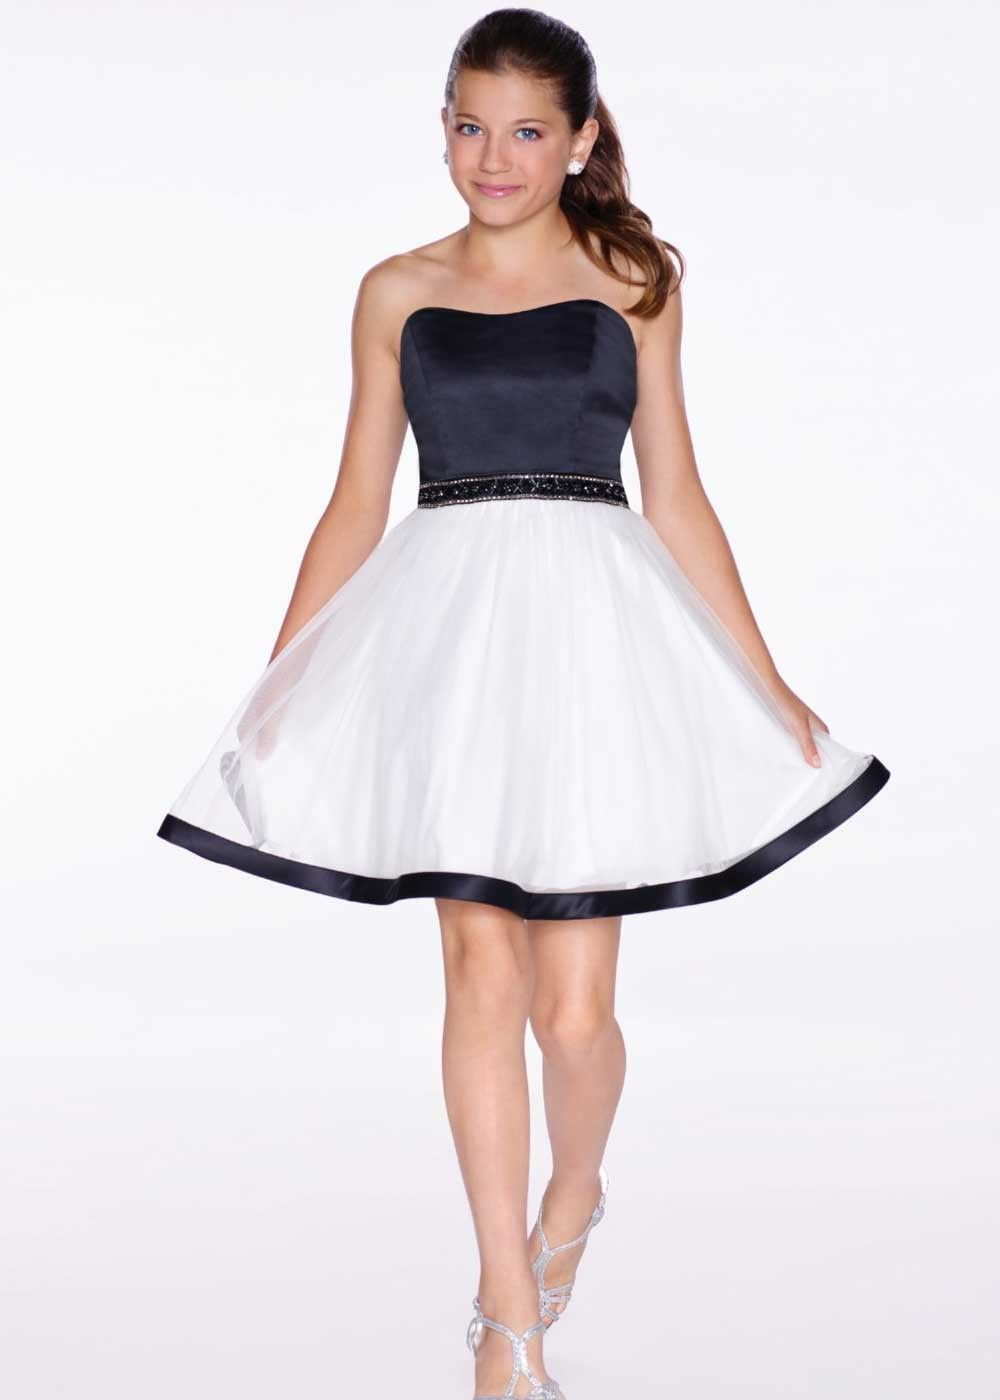 Lexie by Mon Cheri TW11664 Sleeveless Girls Party Dress